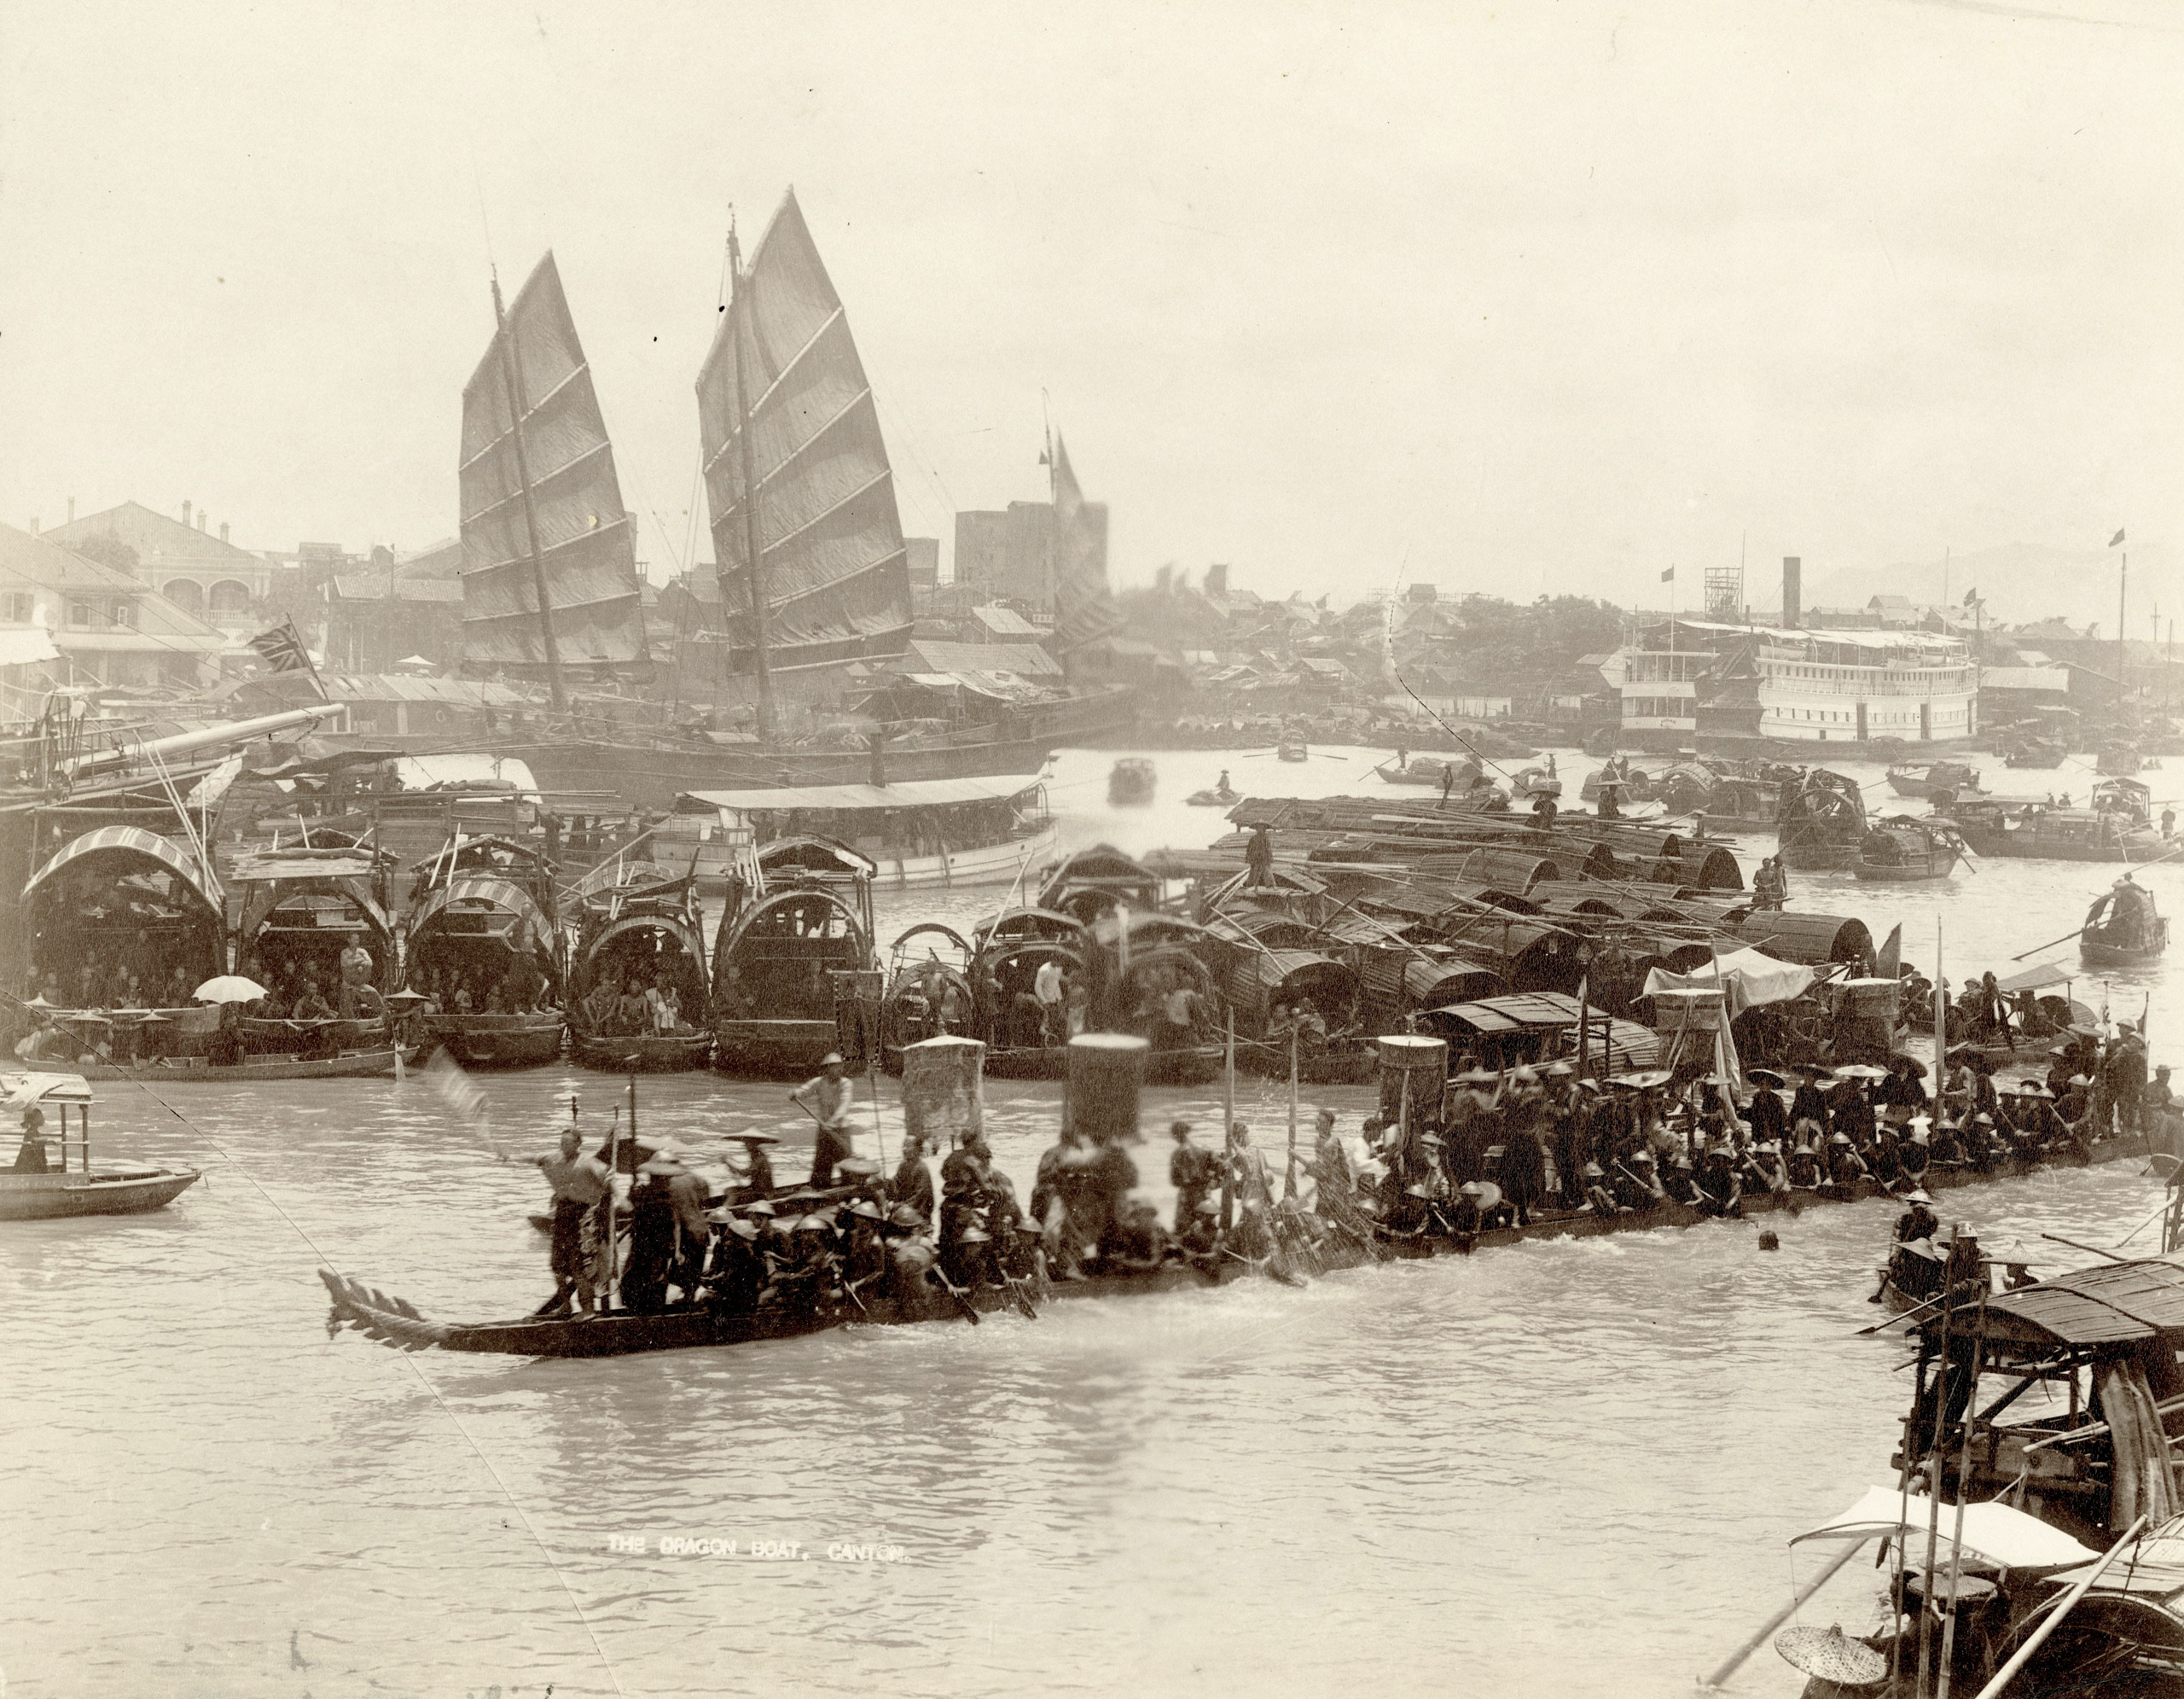 Caption from Stephan Lowentheil Collection. The Dragon Boat race, seen here on a crowded Guangzhou waterway, was held during the Duanwu (Dragon Boat) Festival. The annual event, held on the fifth day of the fifth month of the traditional Chinese calendar, commemorates the life and death of the Chinese scholar Qu Yuan. The race is accompanied by beating drums. It is traditionally believed that the winners will have a year of luck.